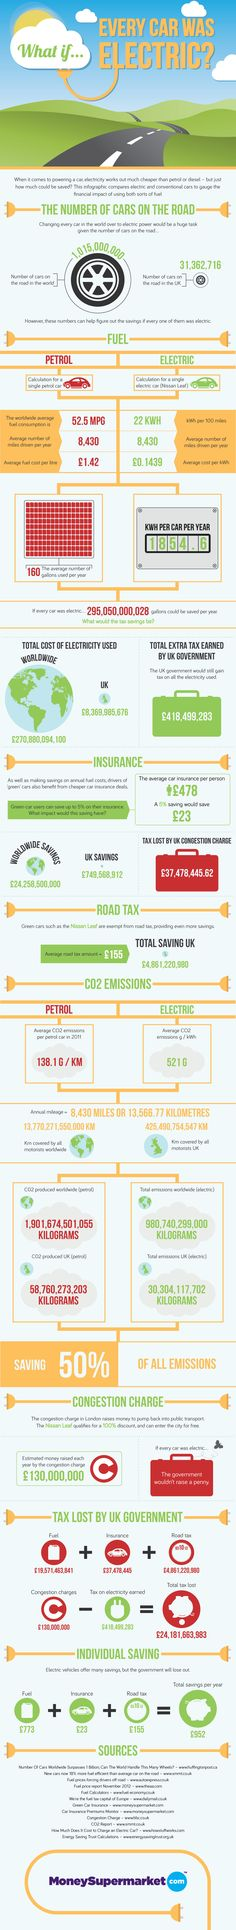 Infographic Hybrids Vs Electric Vehicles Vs Plug In Hybrids